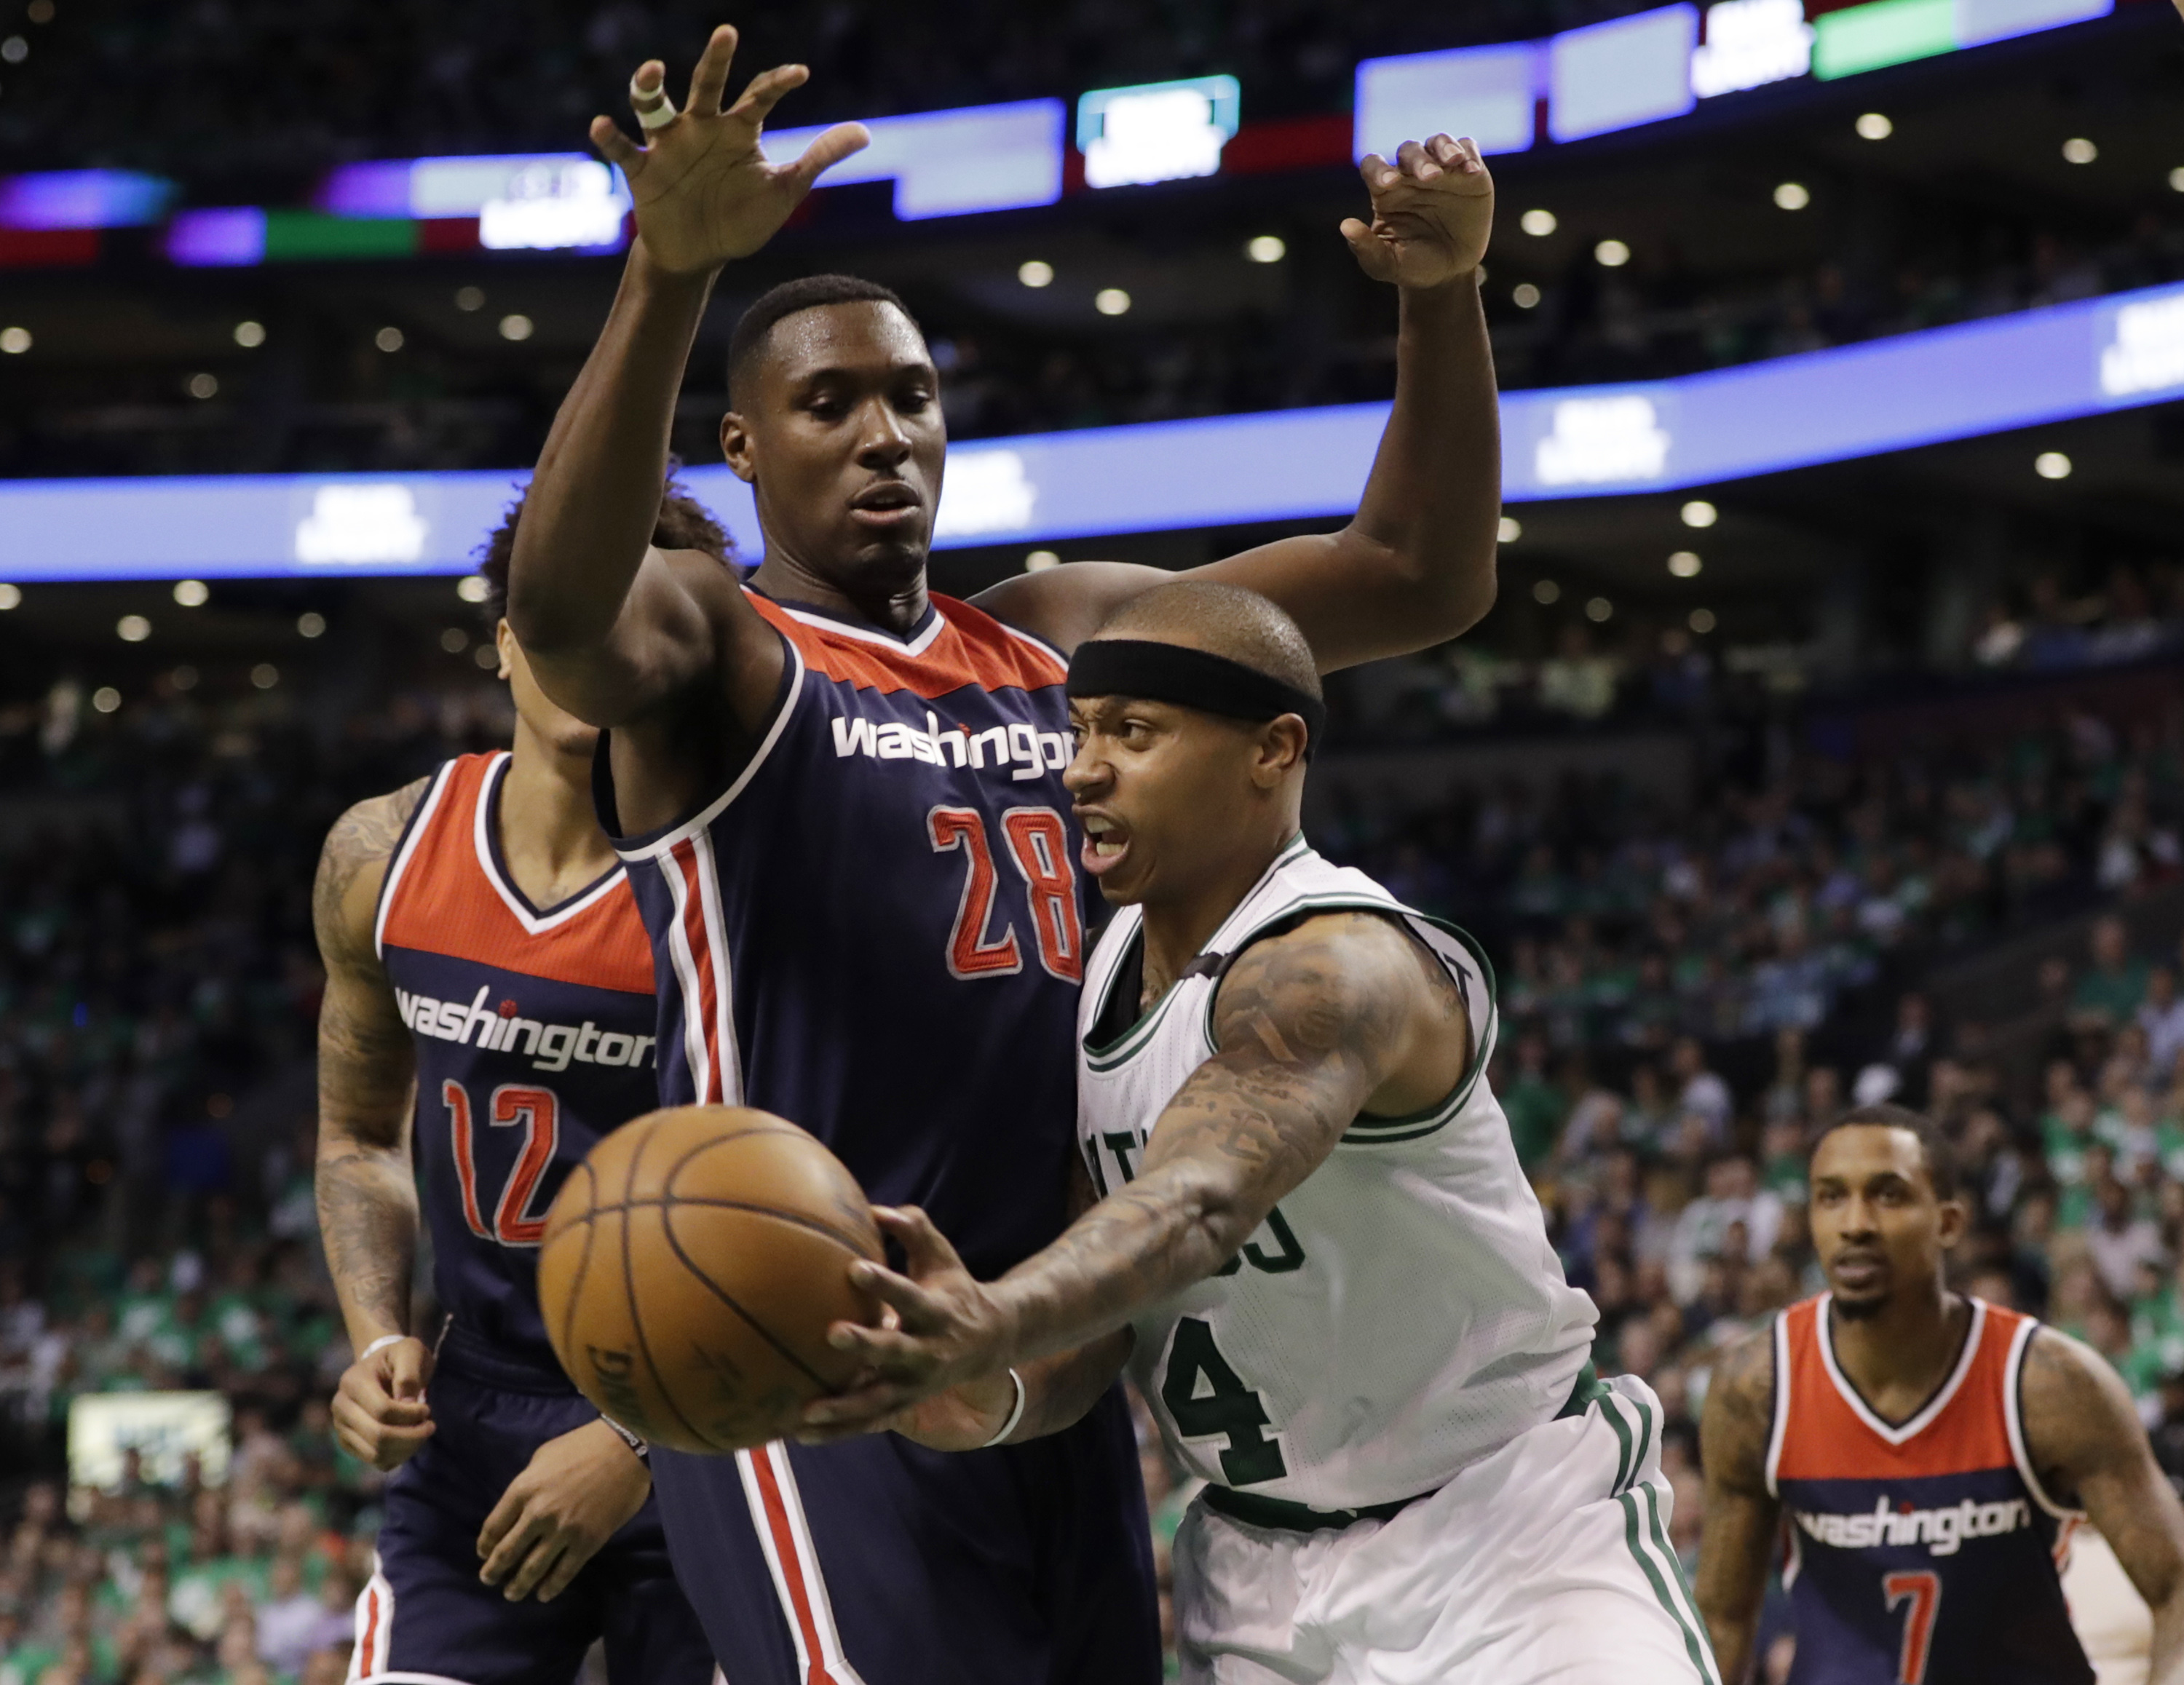 Watch It! - Celtics at Wizards